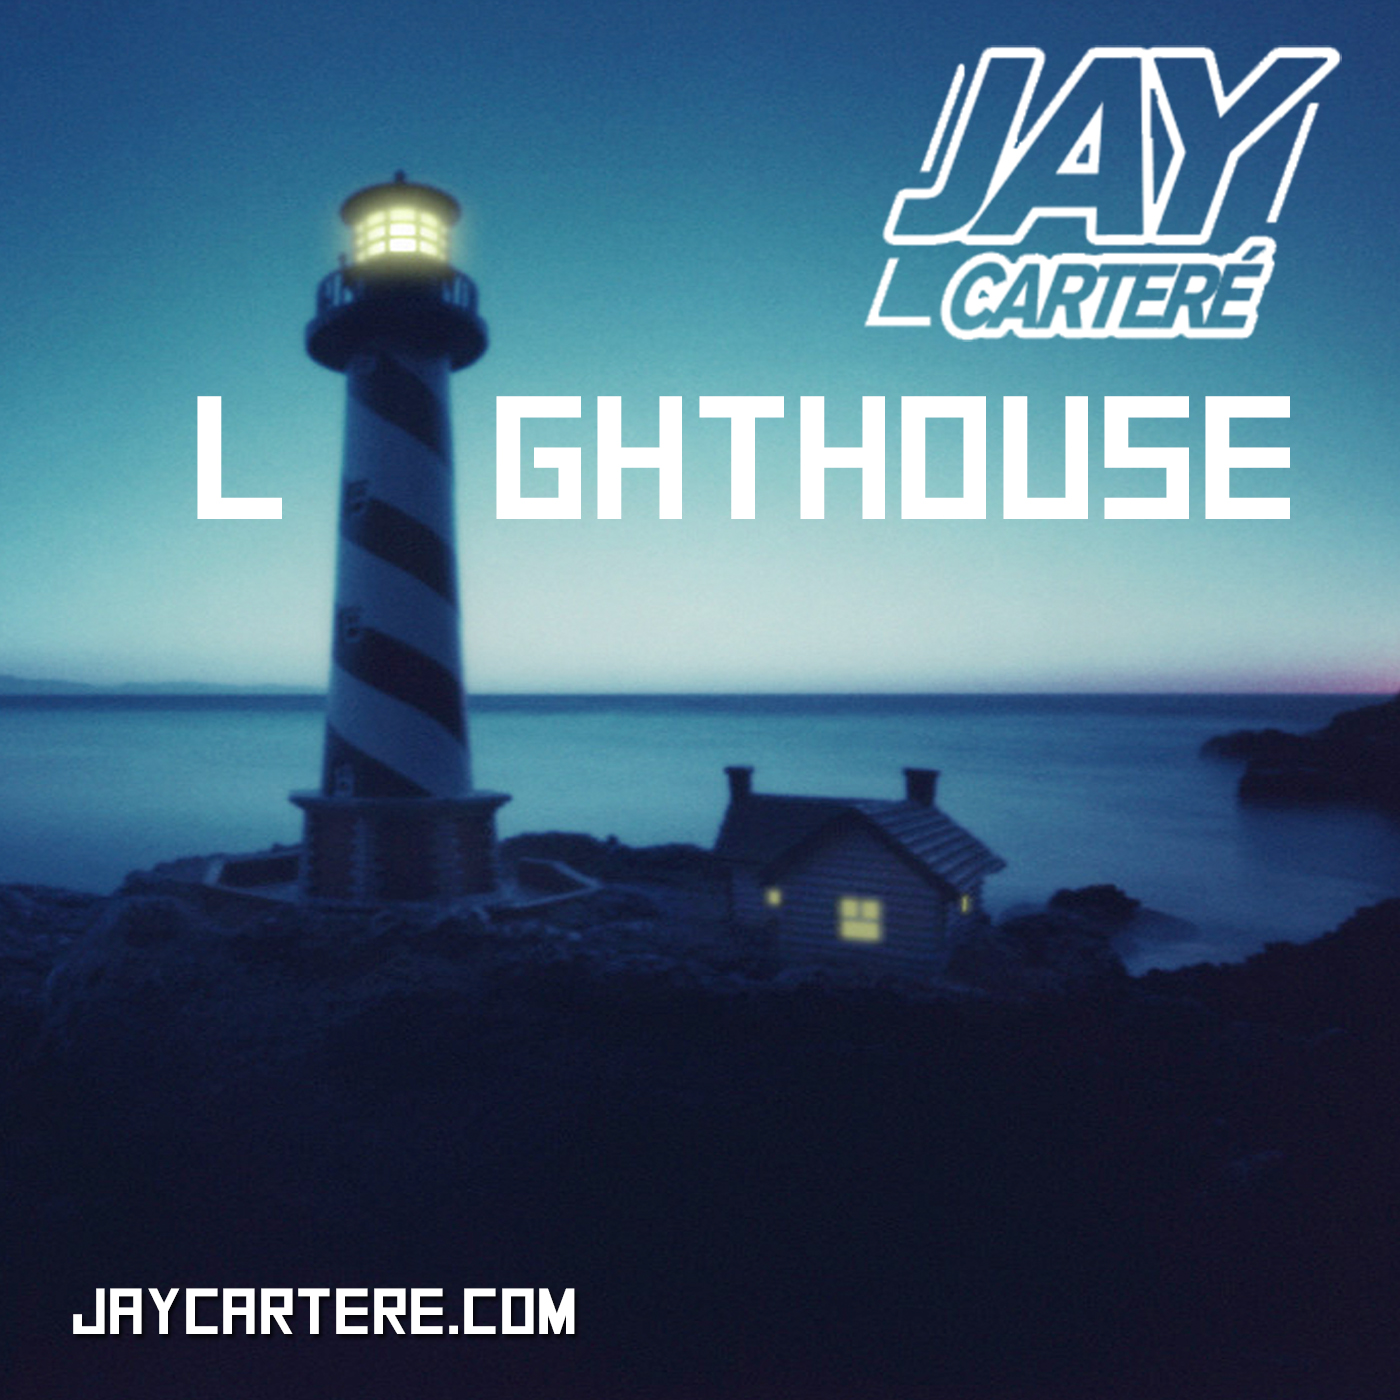 Jay Carteré - Lighthouse | Jay Cartere | Dance